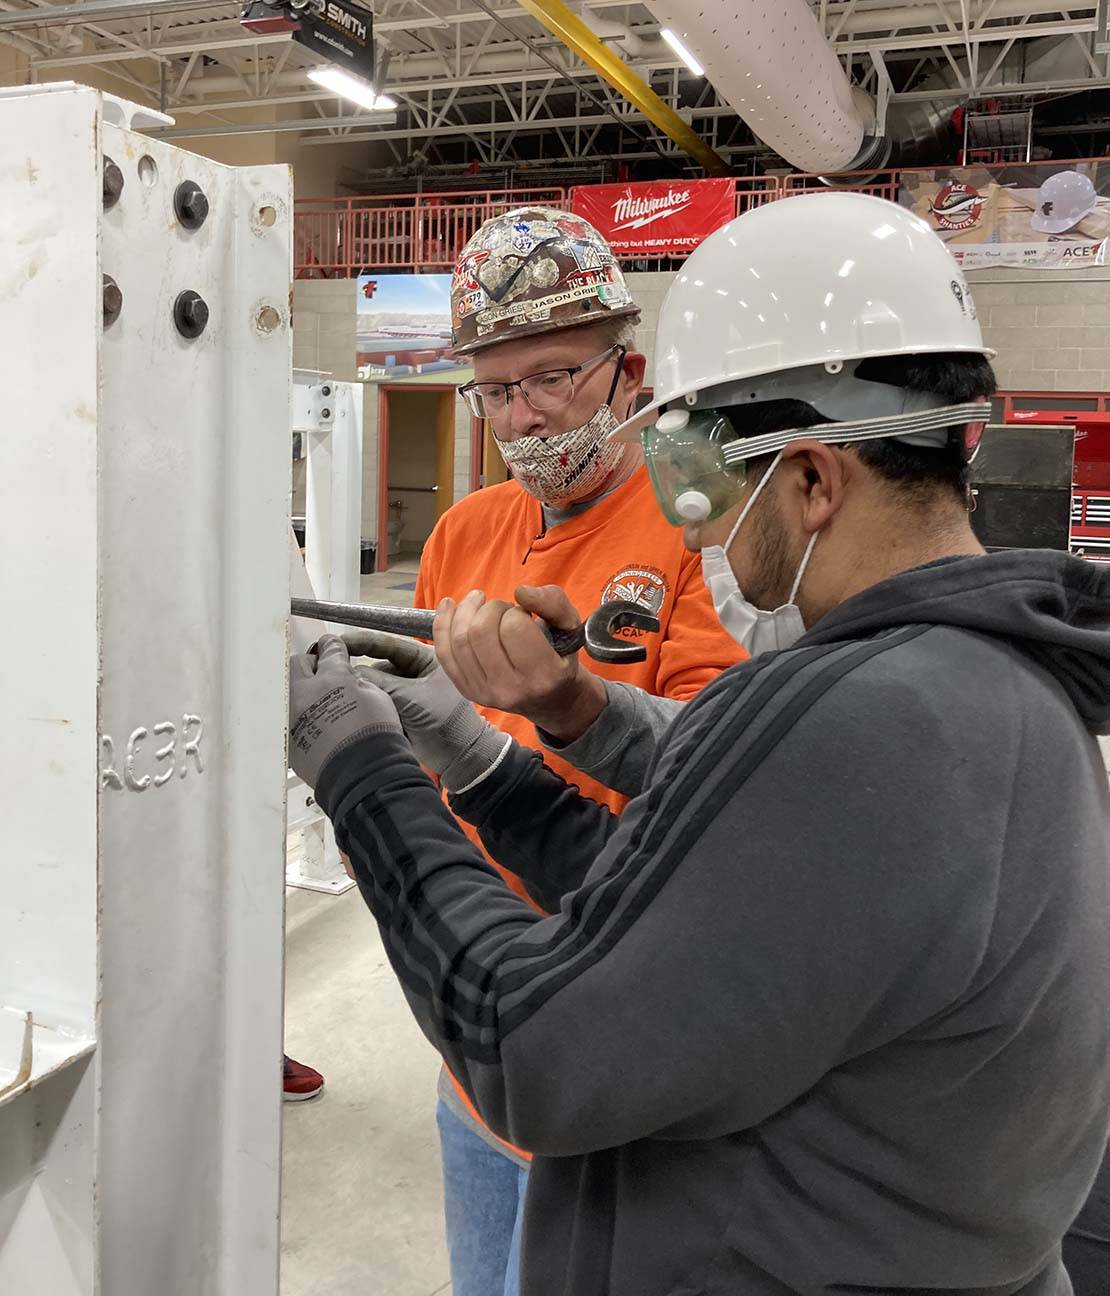 ACE student drills on iron piece while iron worker provides guidance